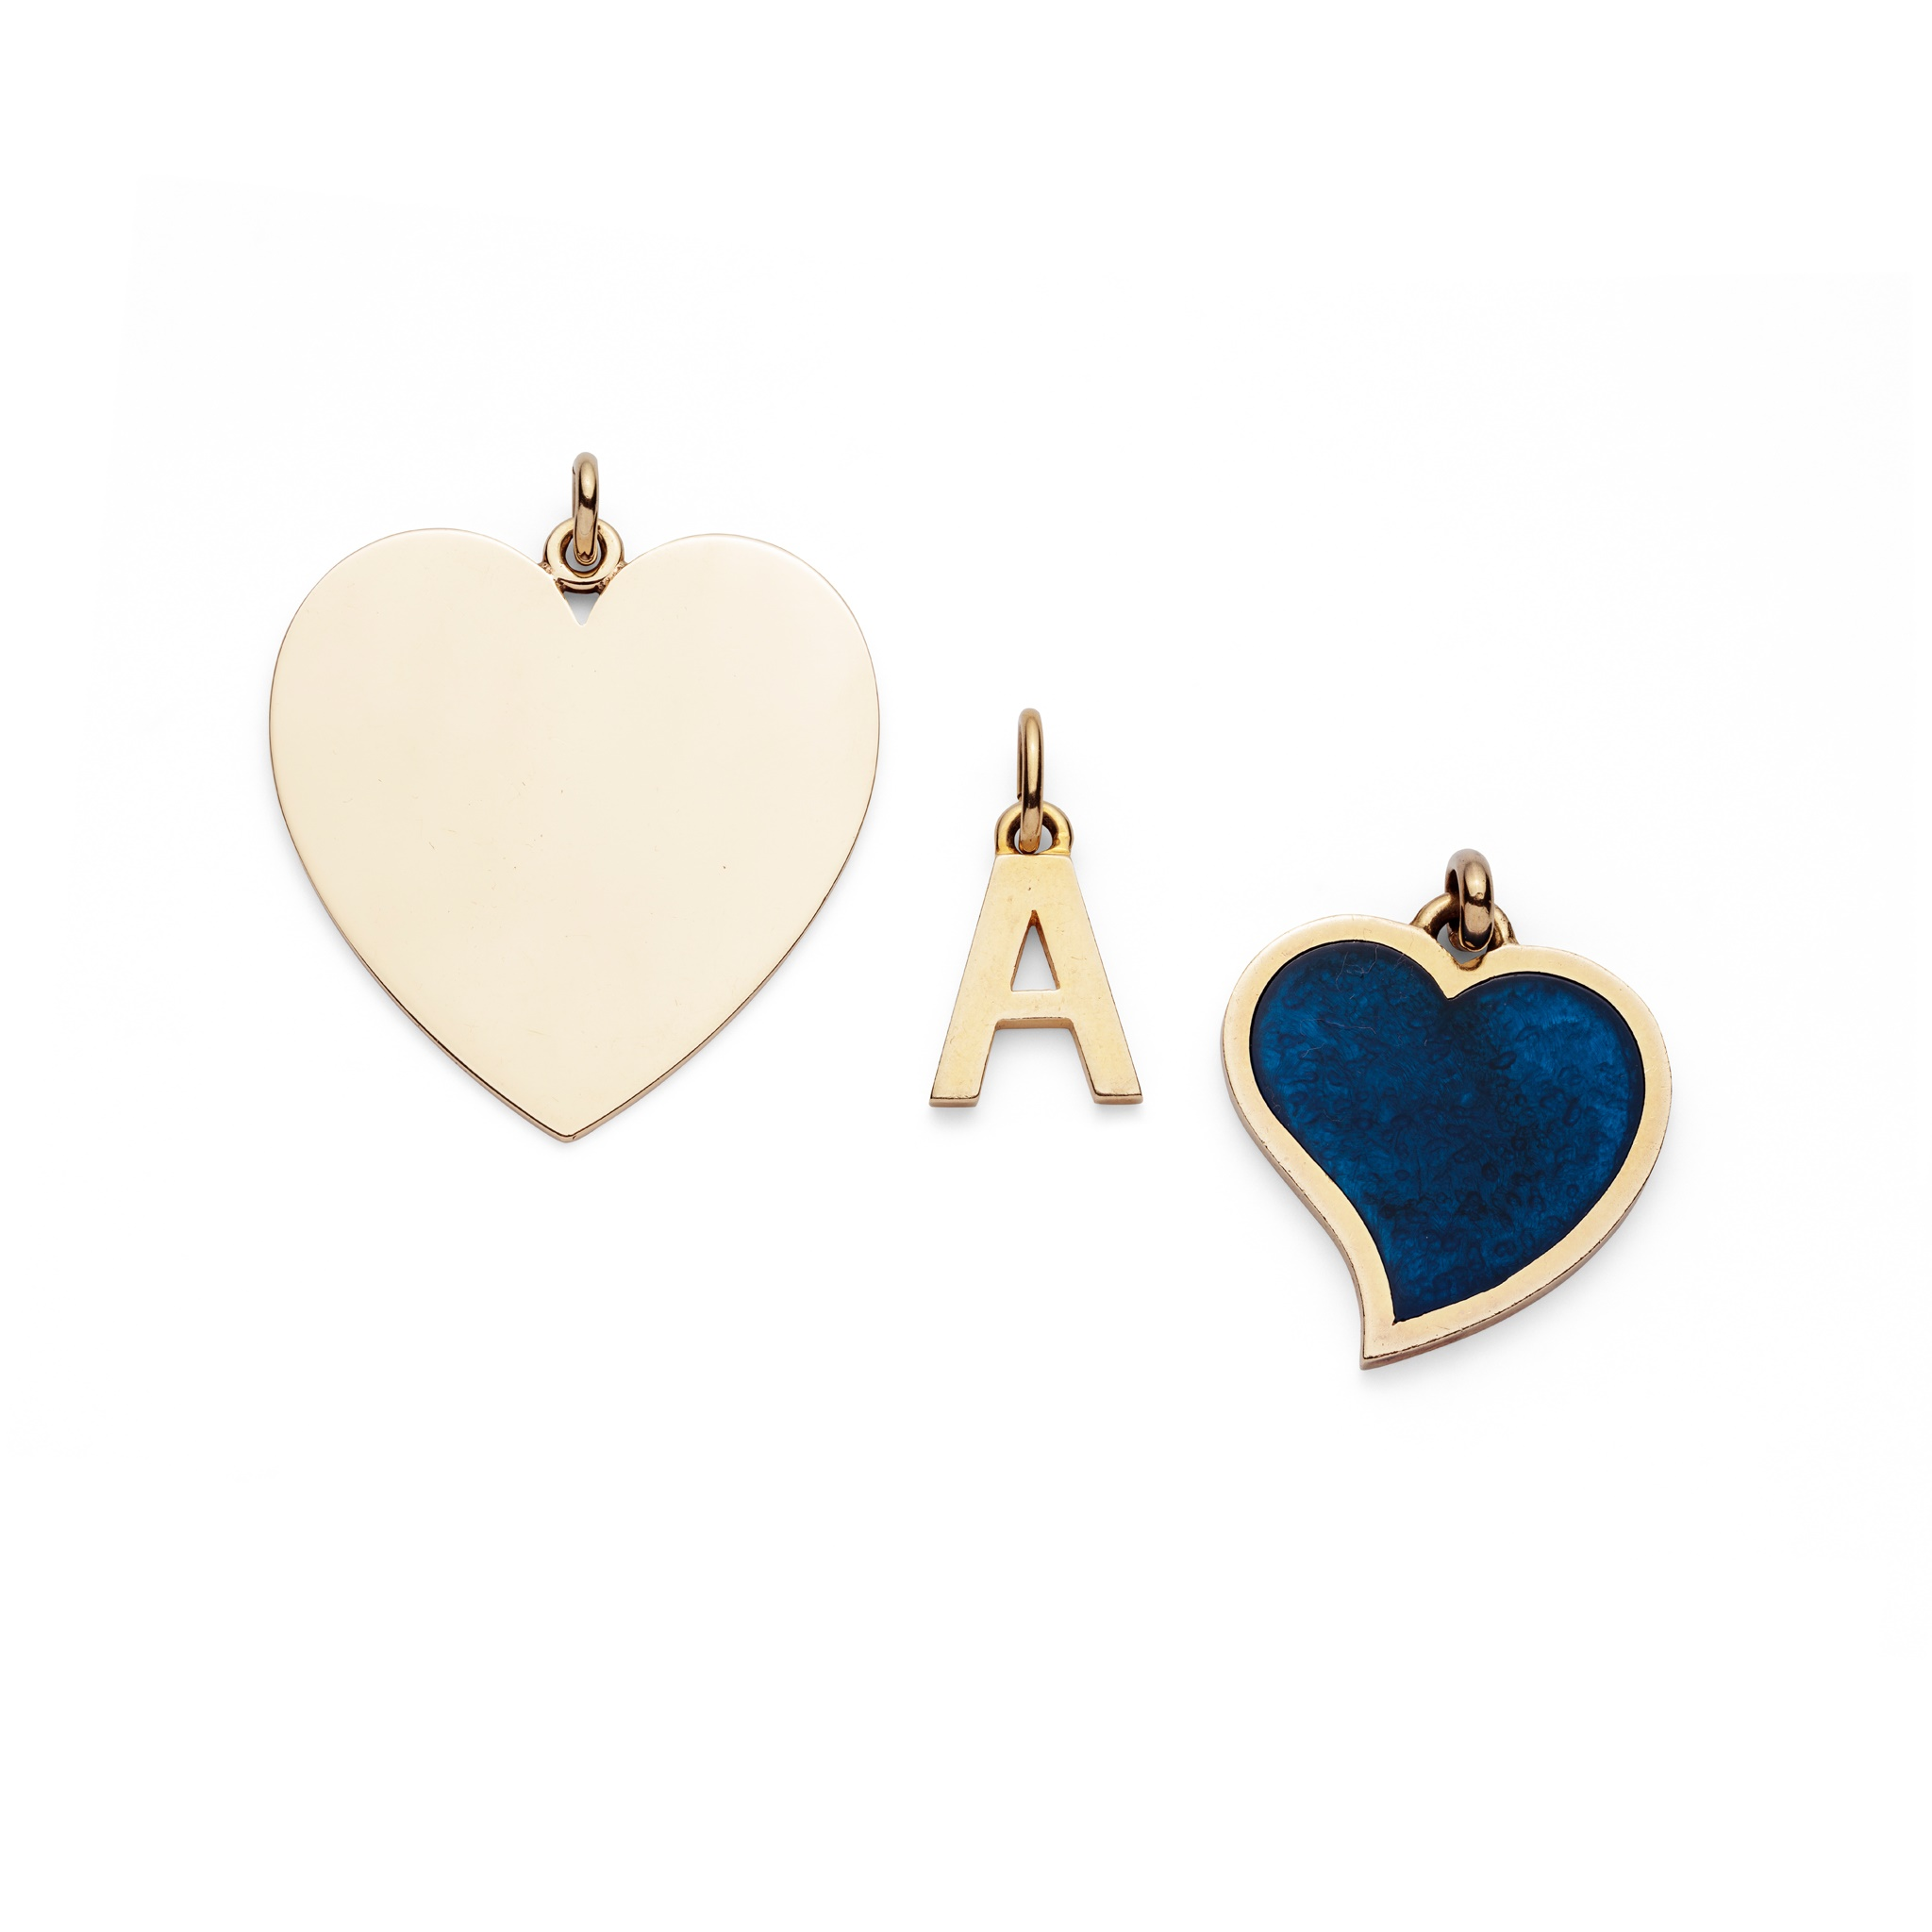 A pendant necklace, by Gucci and a pendant by Tiffany & Co. The 9ct gold collar suspending a 9ct